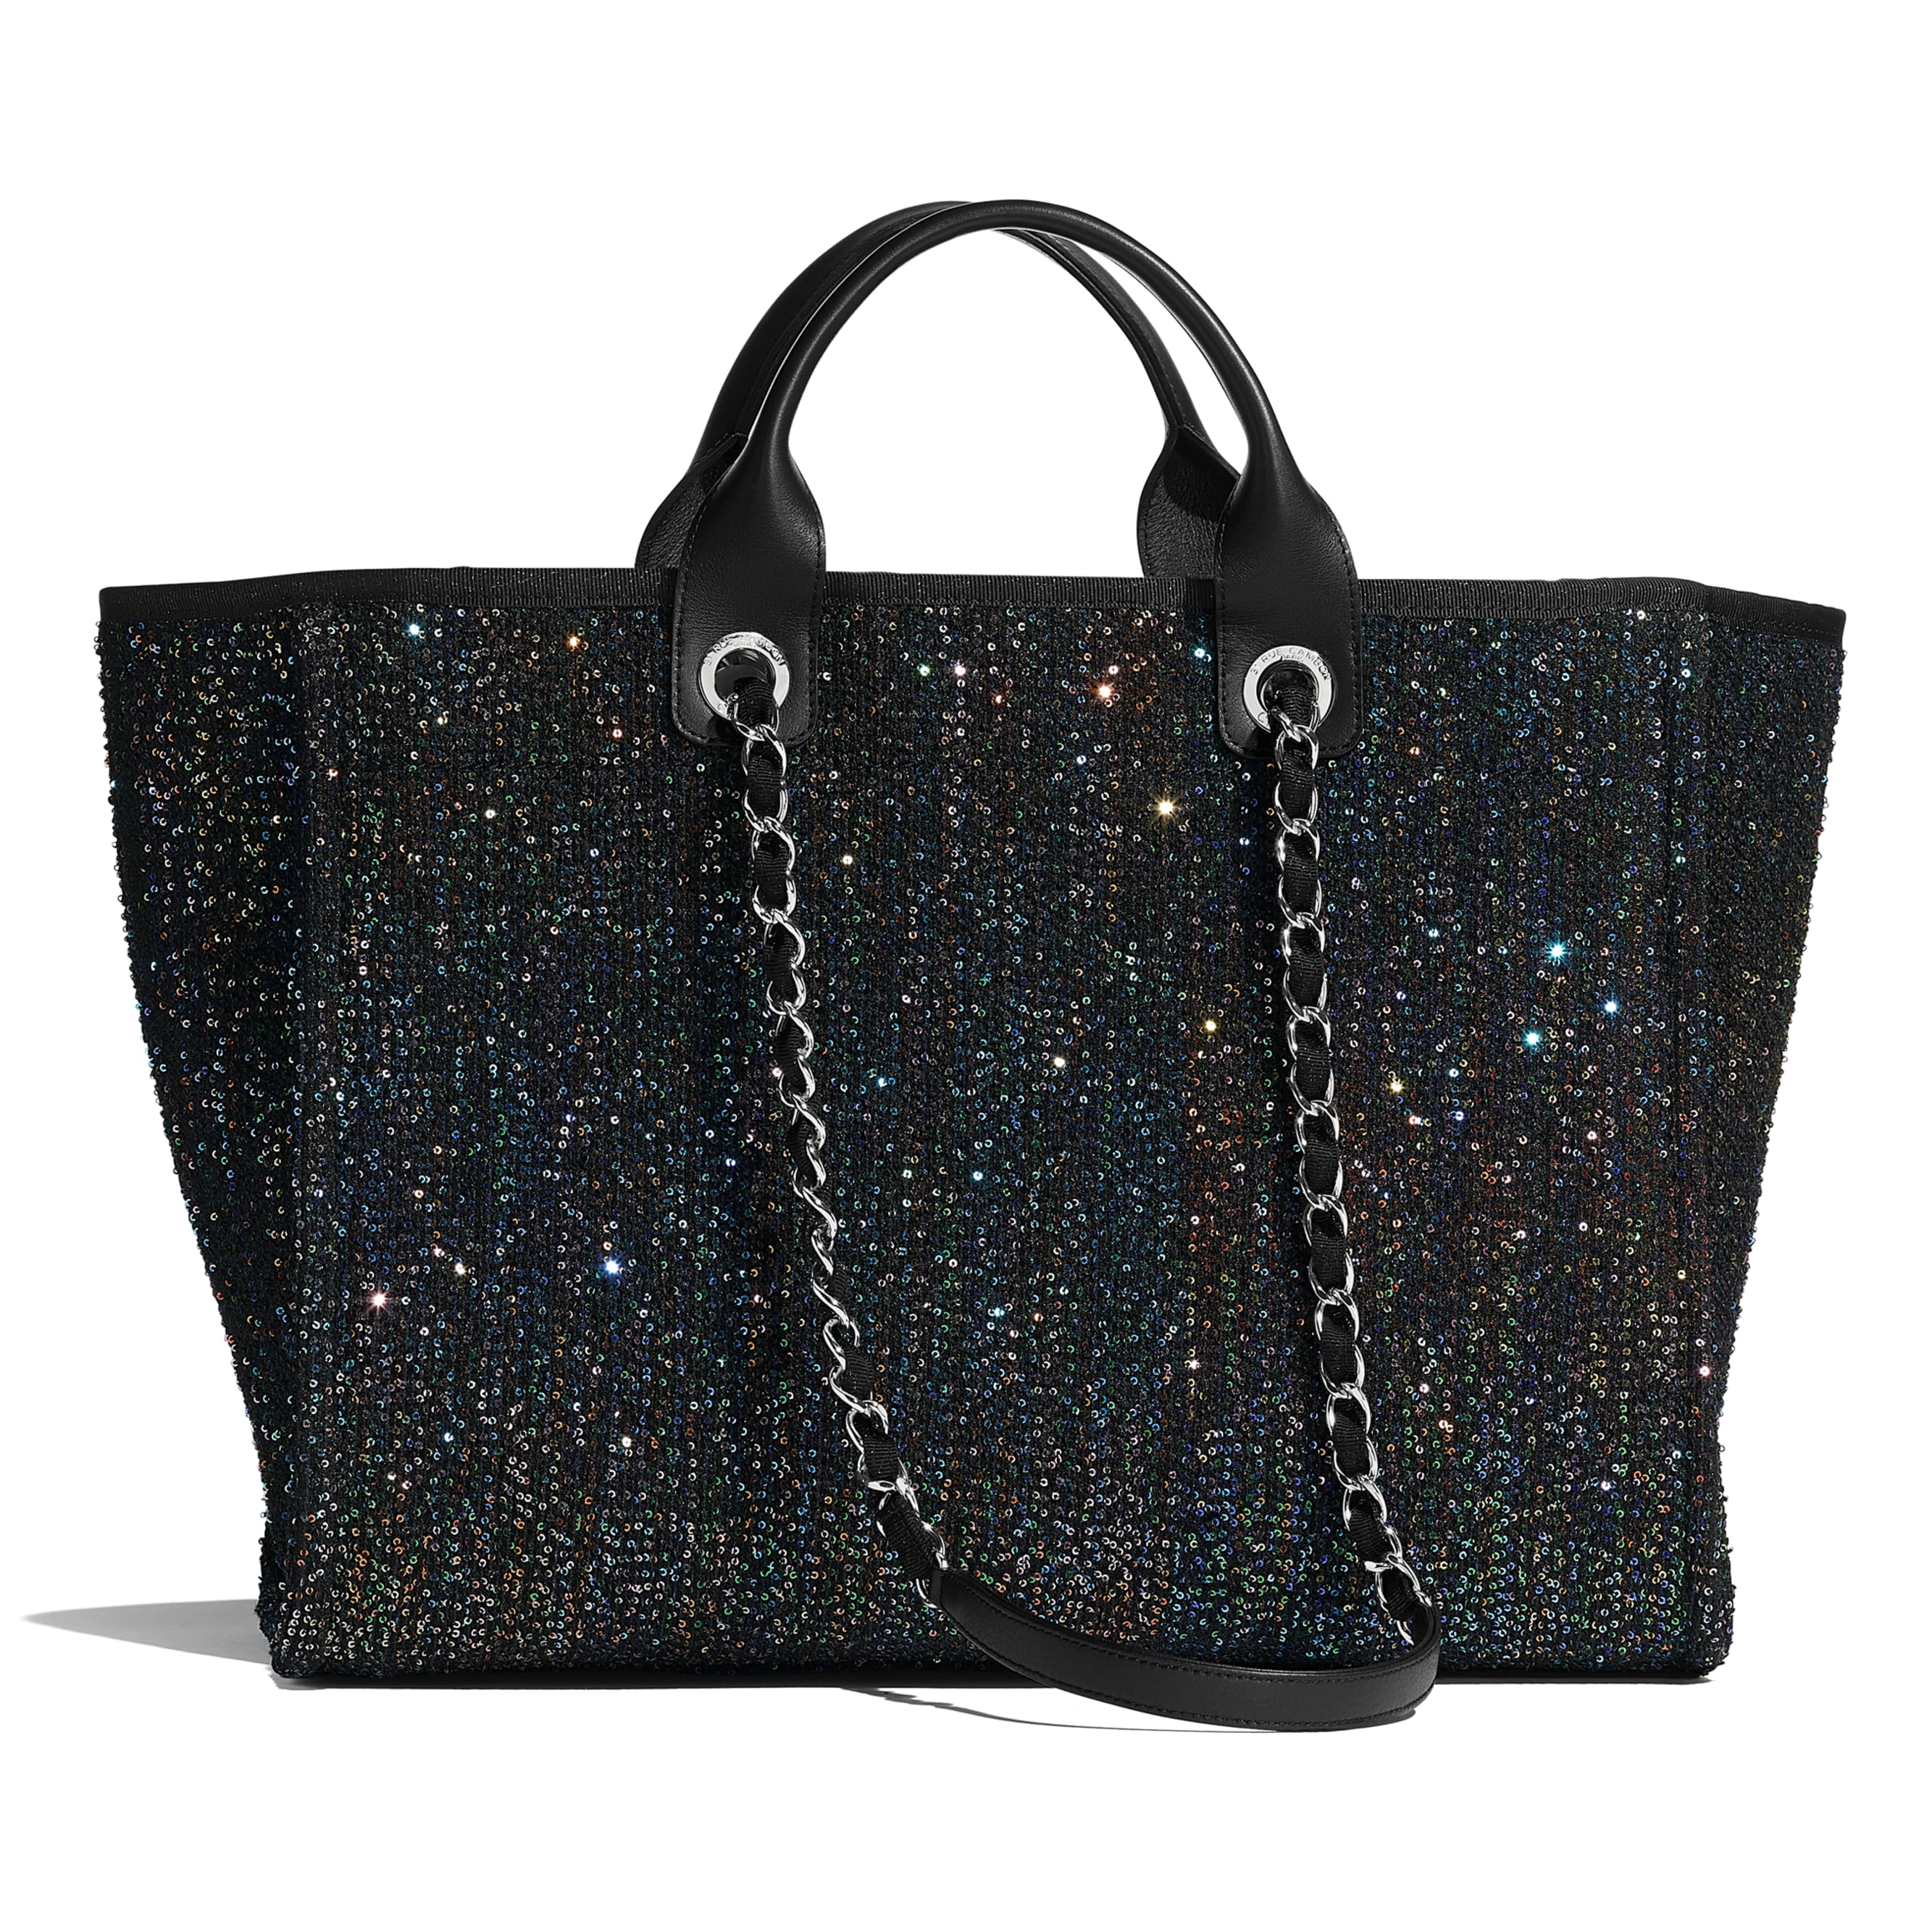 Large Tote - Black - Viscose, Calfskin, Sequins & Silver-Tone Metal - CHANEL - Alternative view - see standard sized version